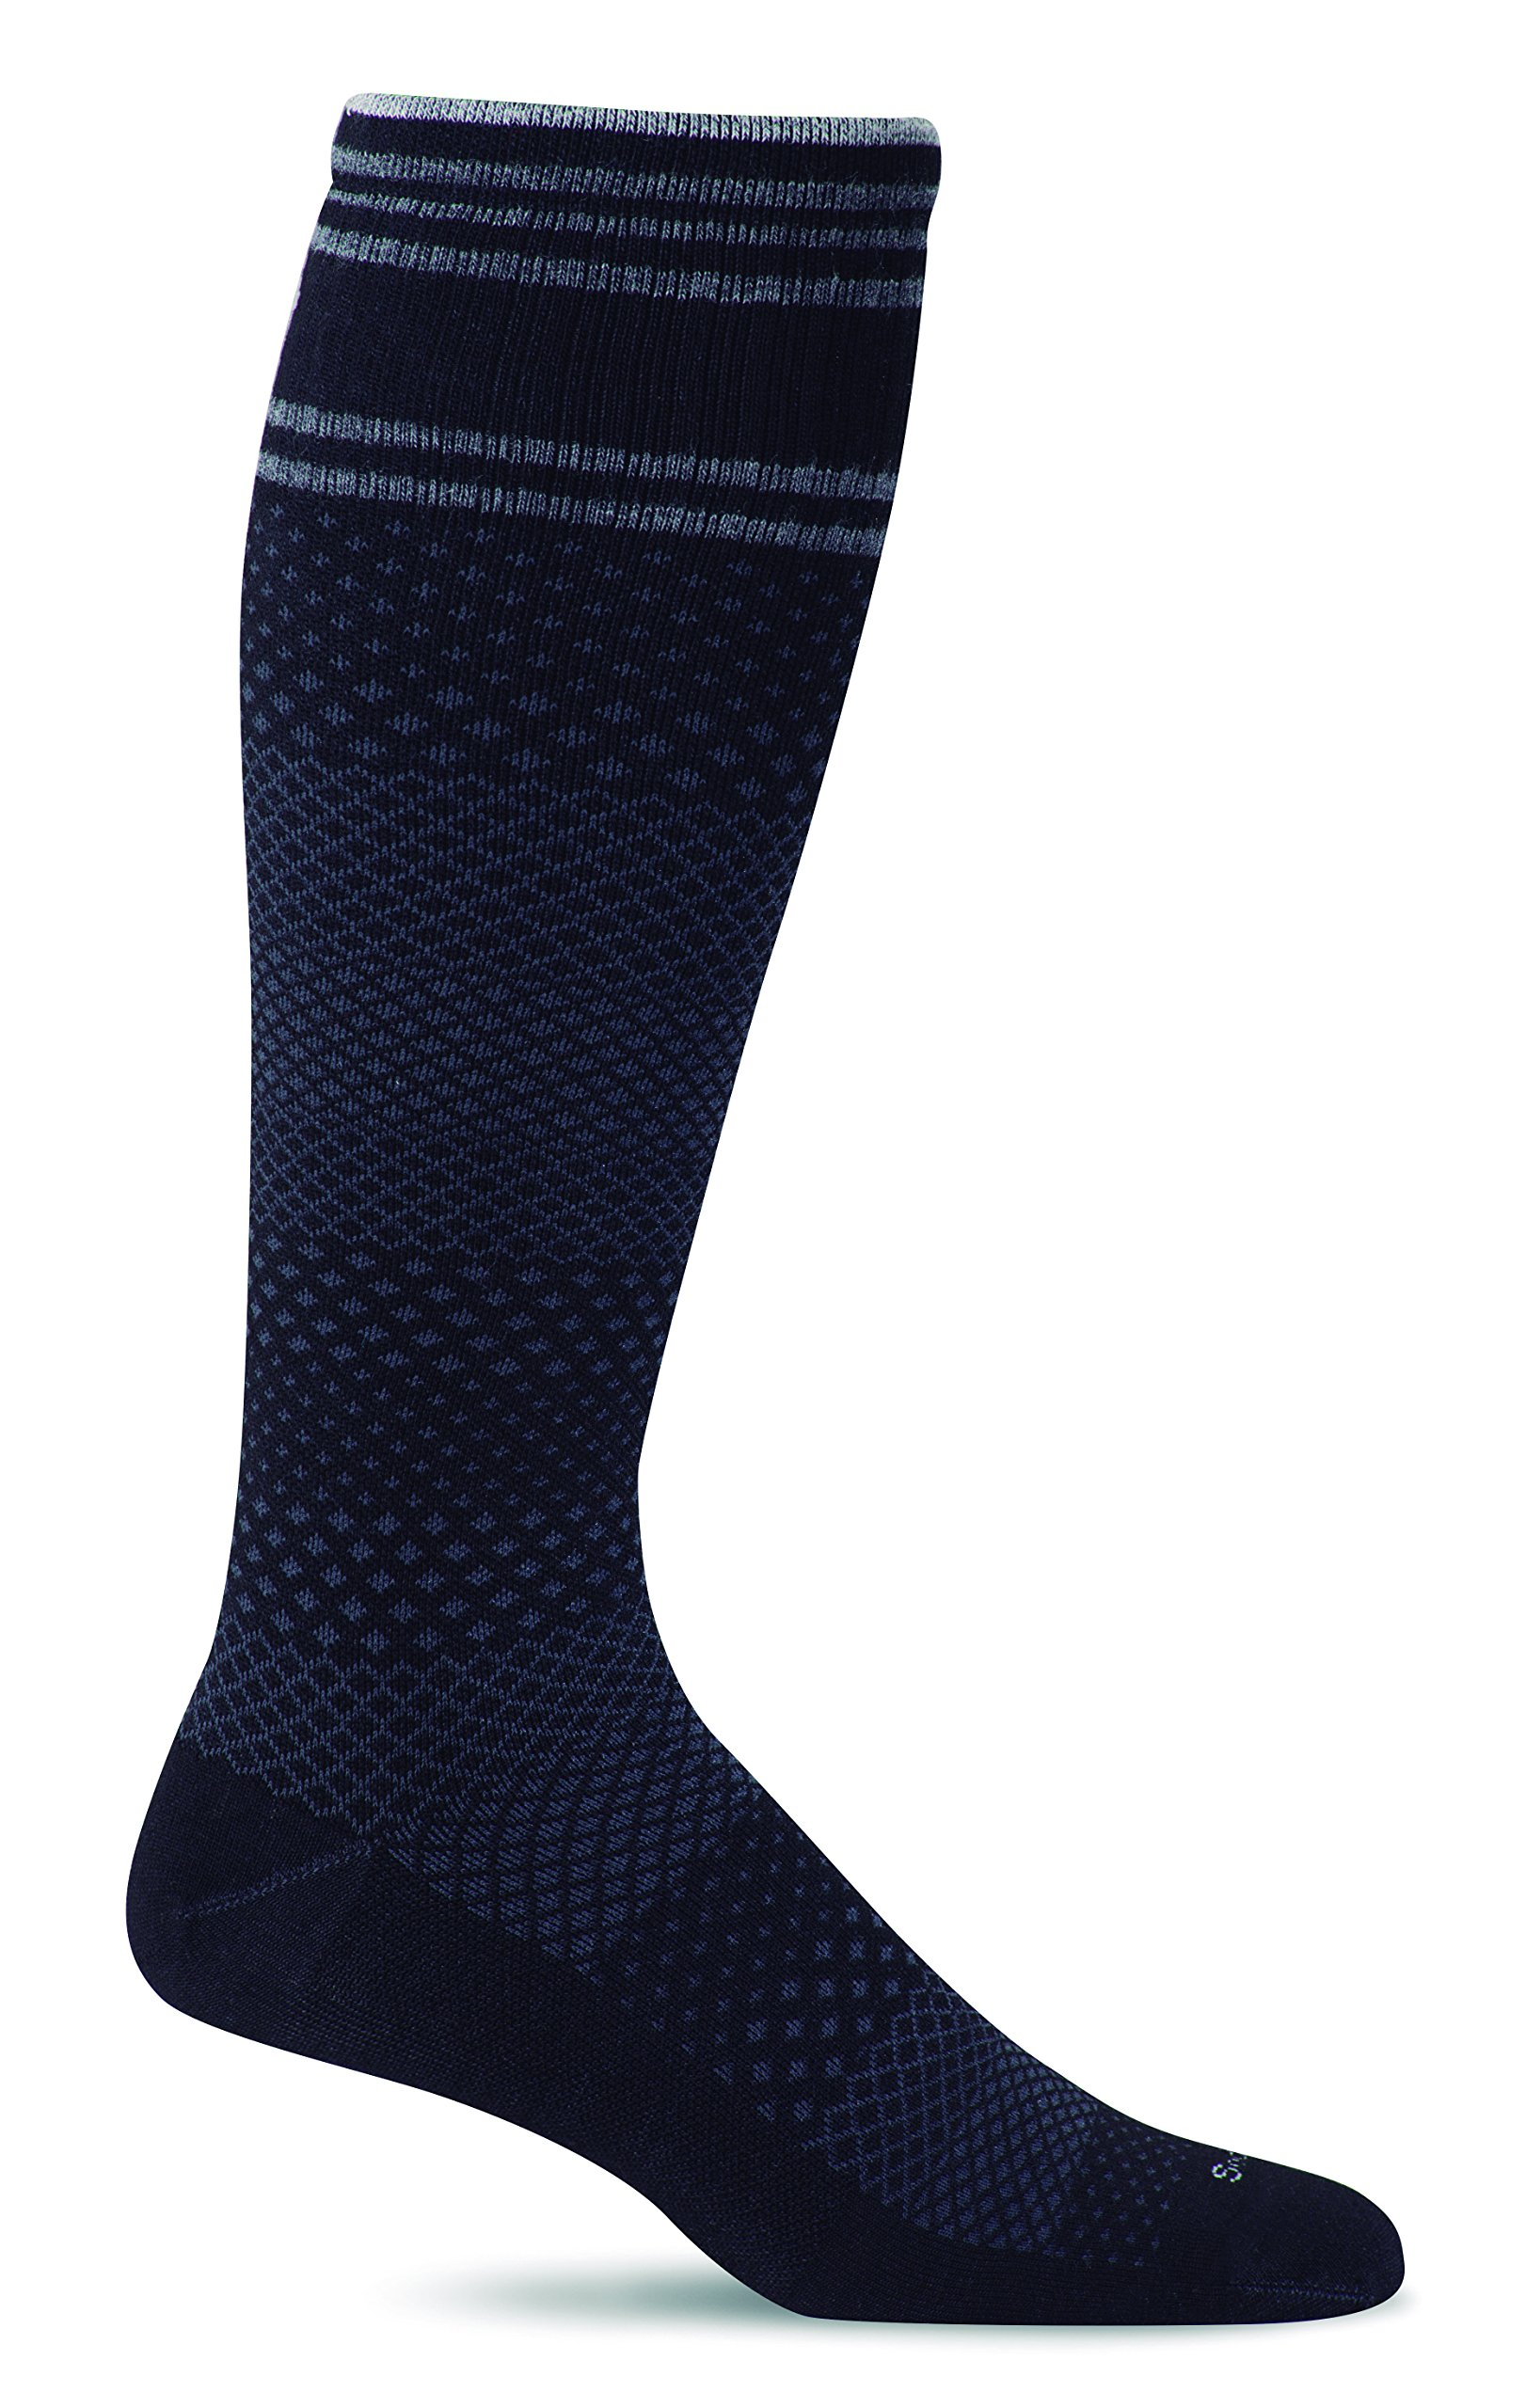 Sockwell Men's Smooth Vibe Firm (20-30mmHg) Graduated Compression Socks, Black, Large/X-Large by Sockwell